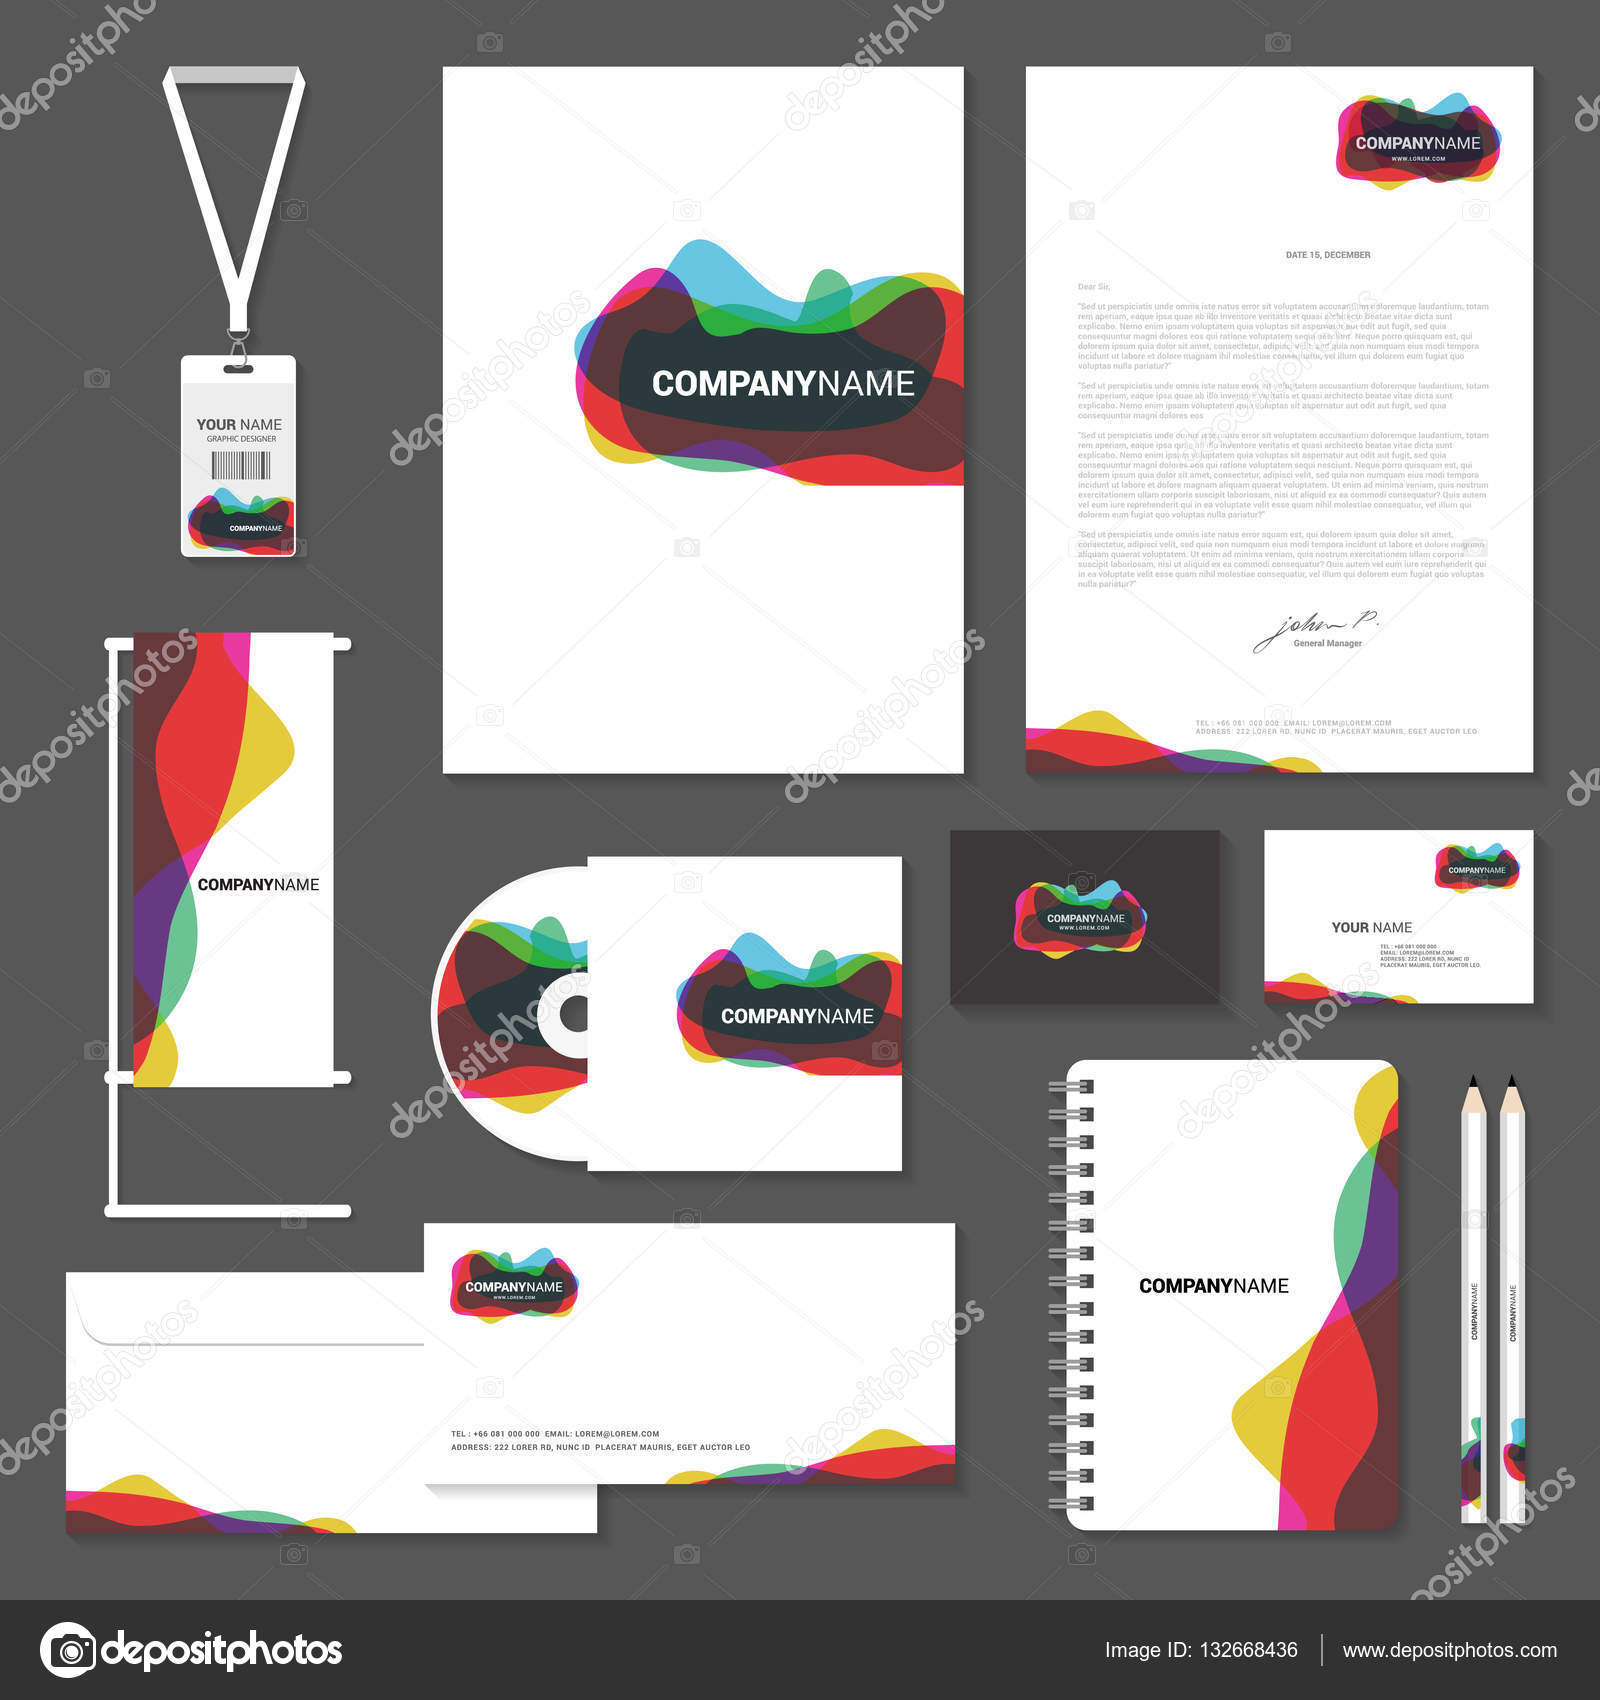 Corporate identity templates, Business card, cd, enverlop, lette ...